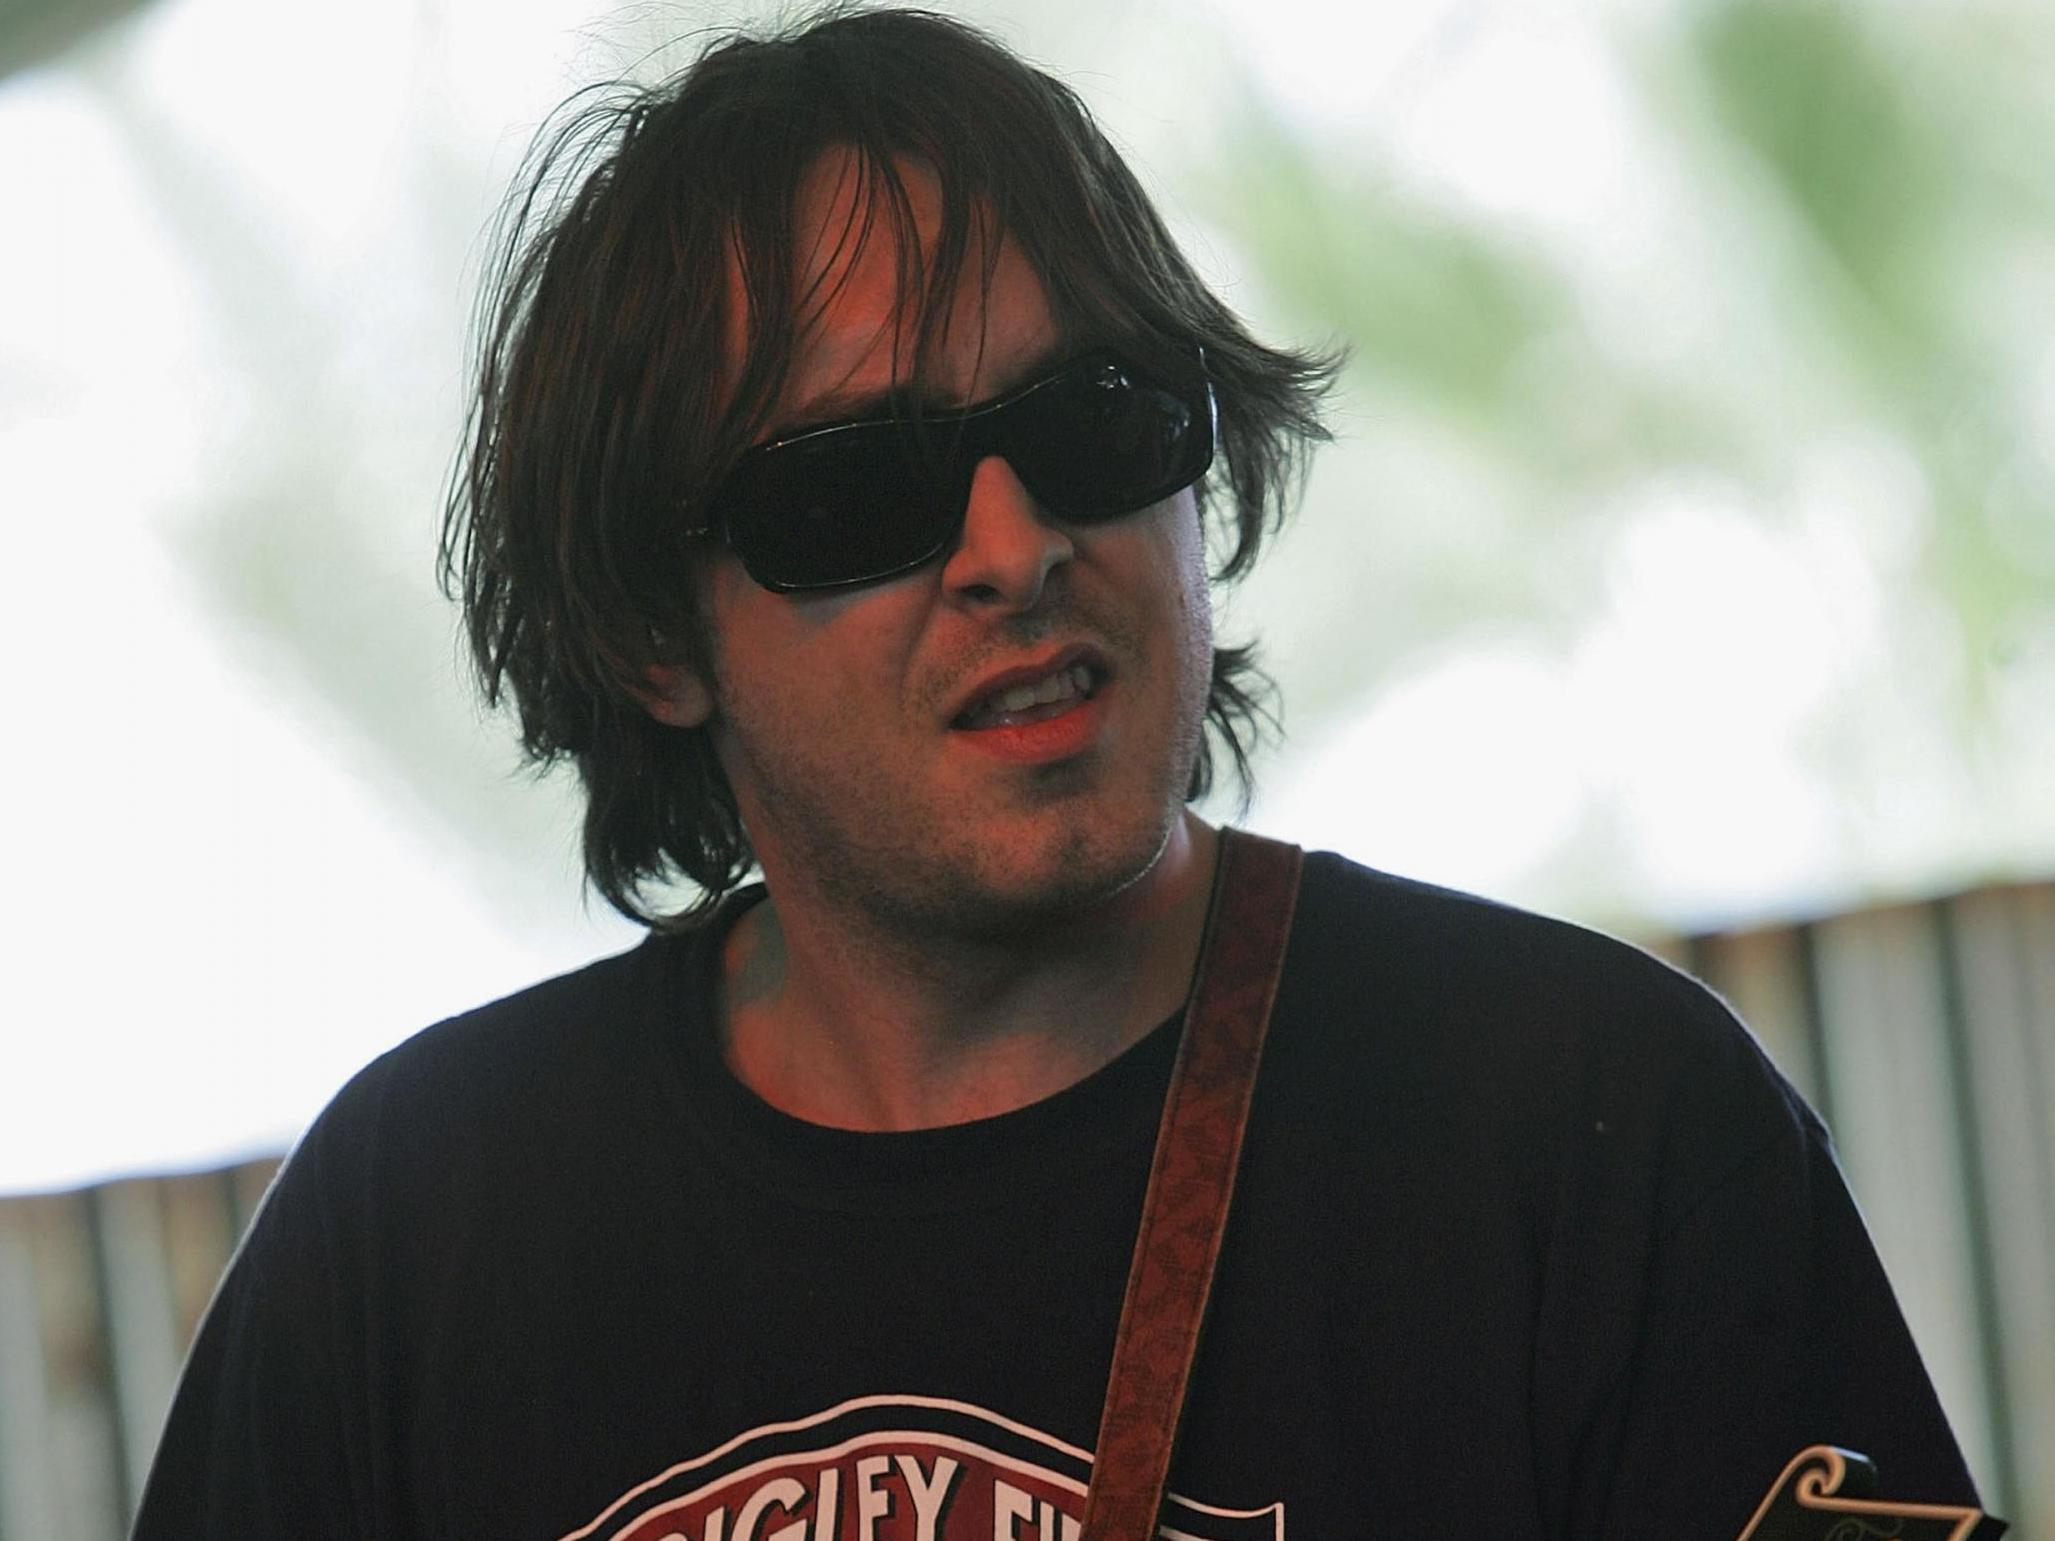 Jeff Austin death: Bluegrass musician and founder of Yonder Mountain String Band dies, aged 45